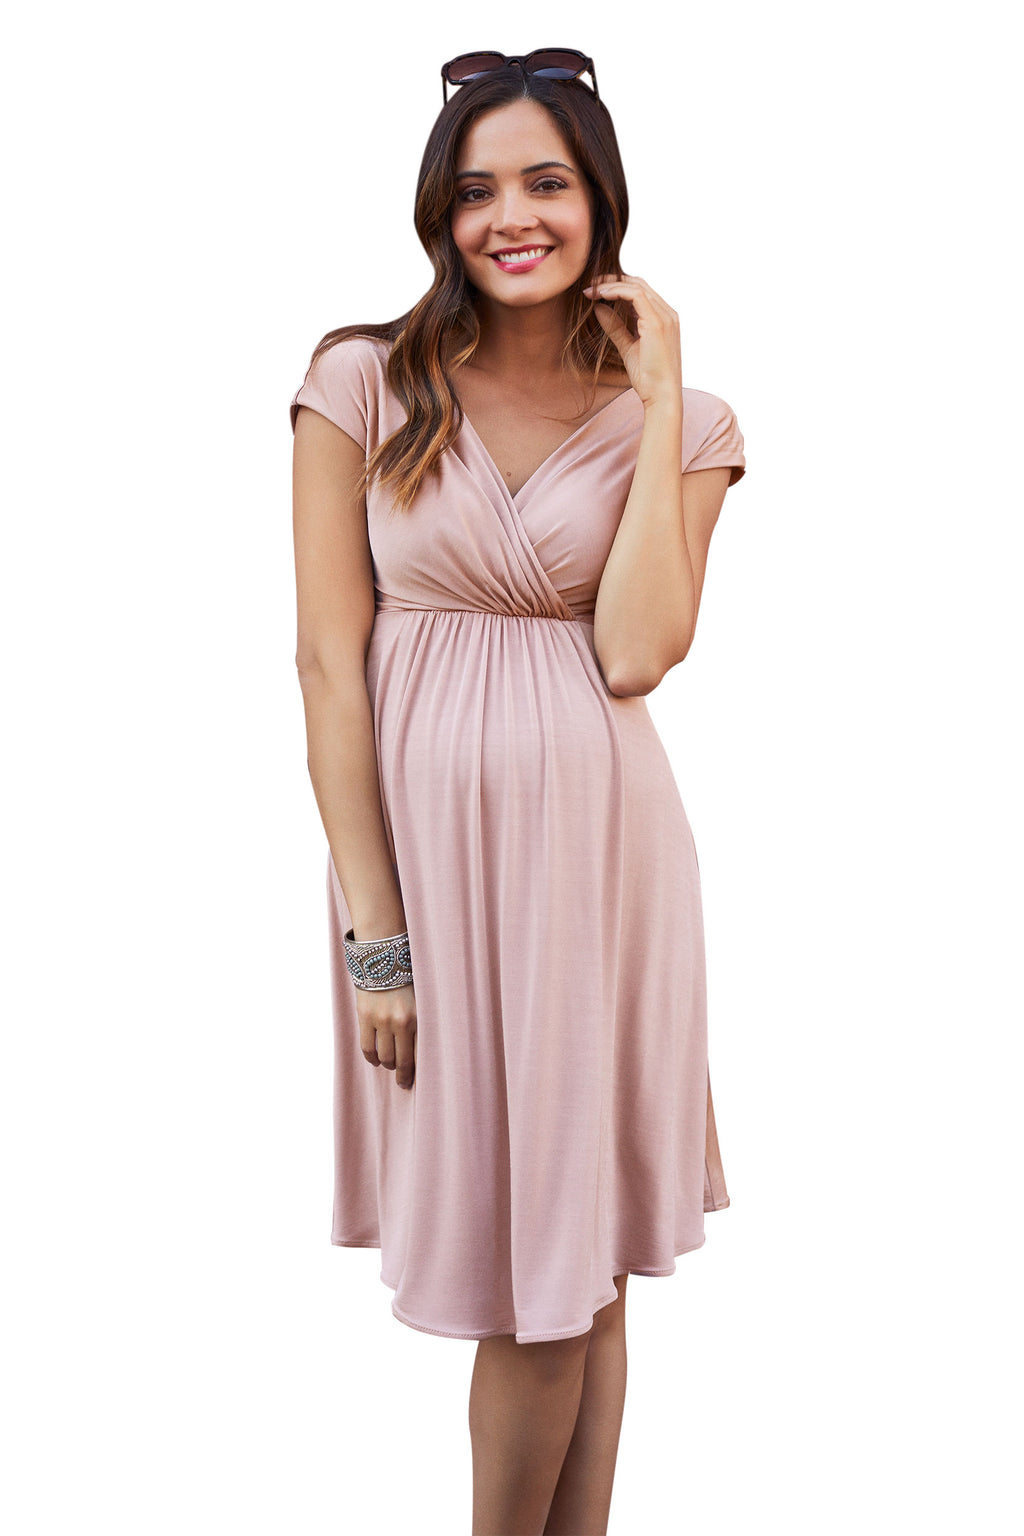 Tiffany Rose Francesca Maternity Nursing Dress - Seven Women Maternity